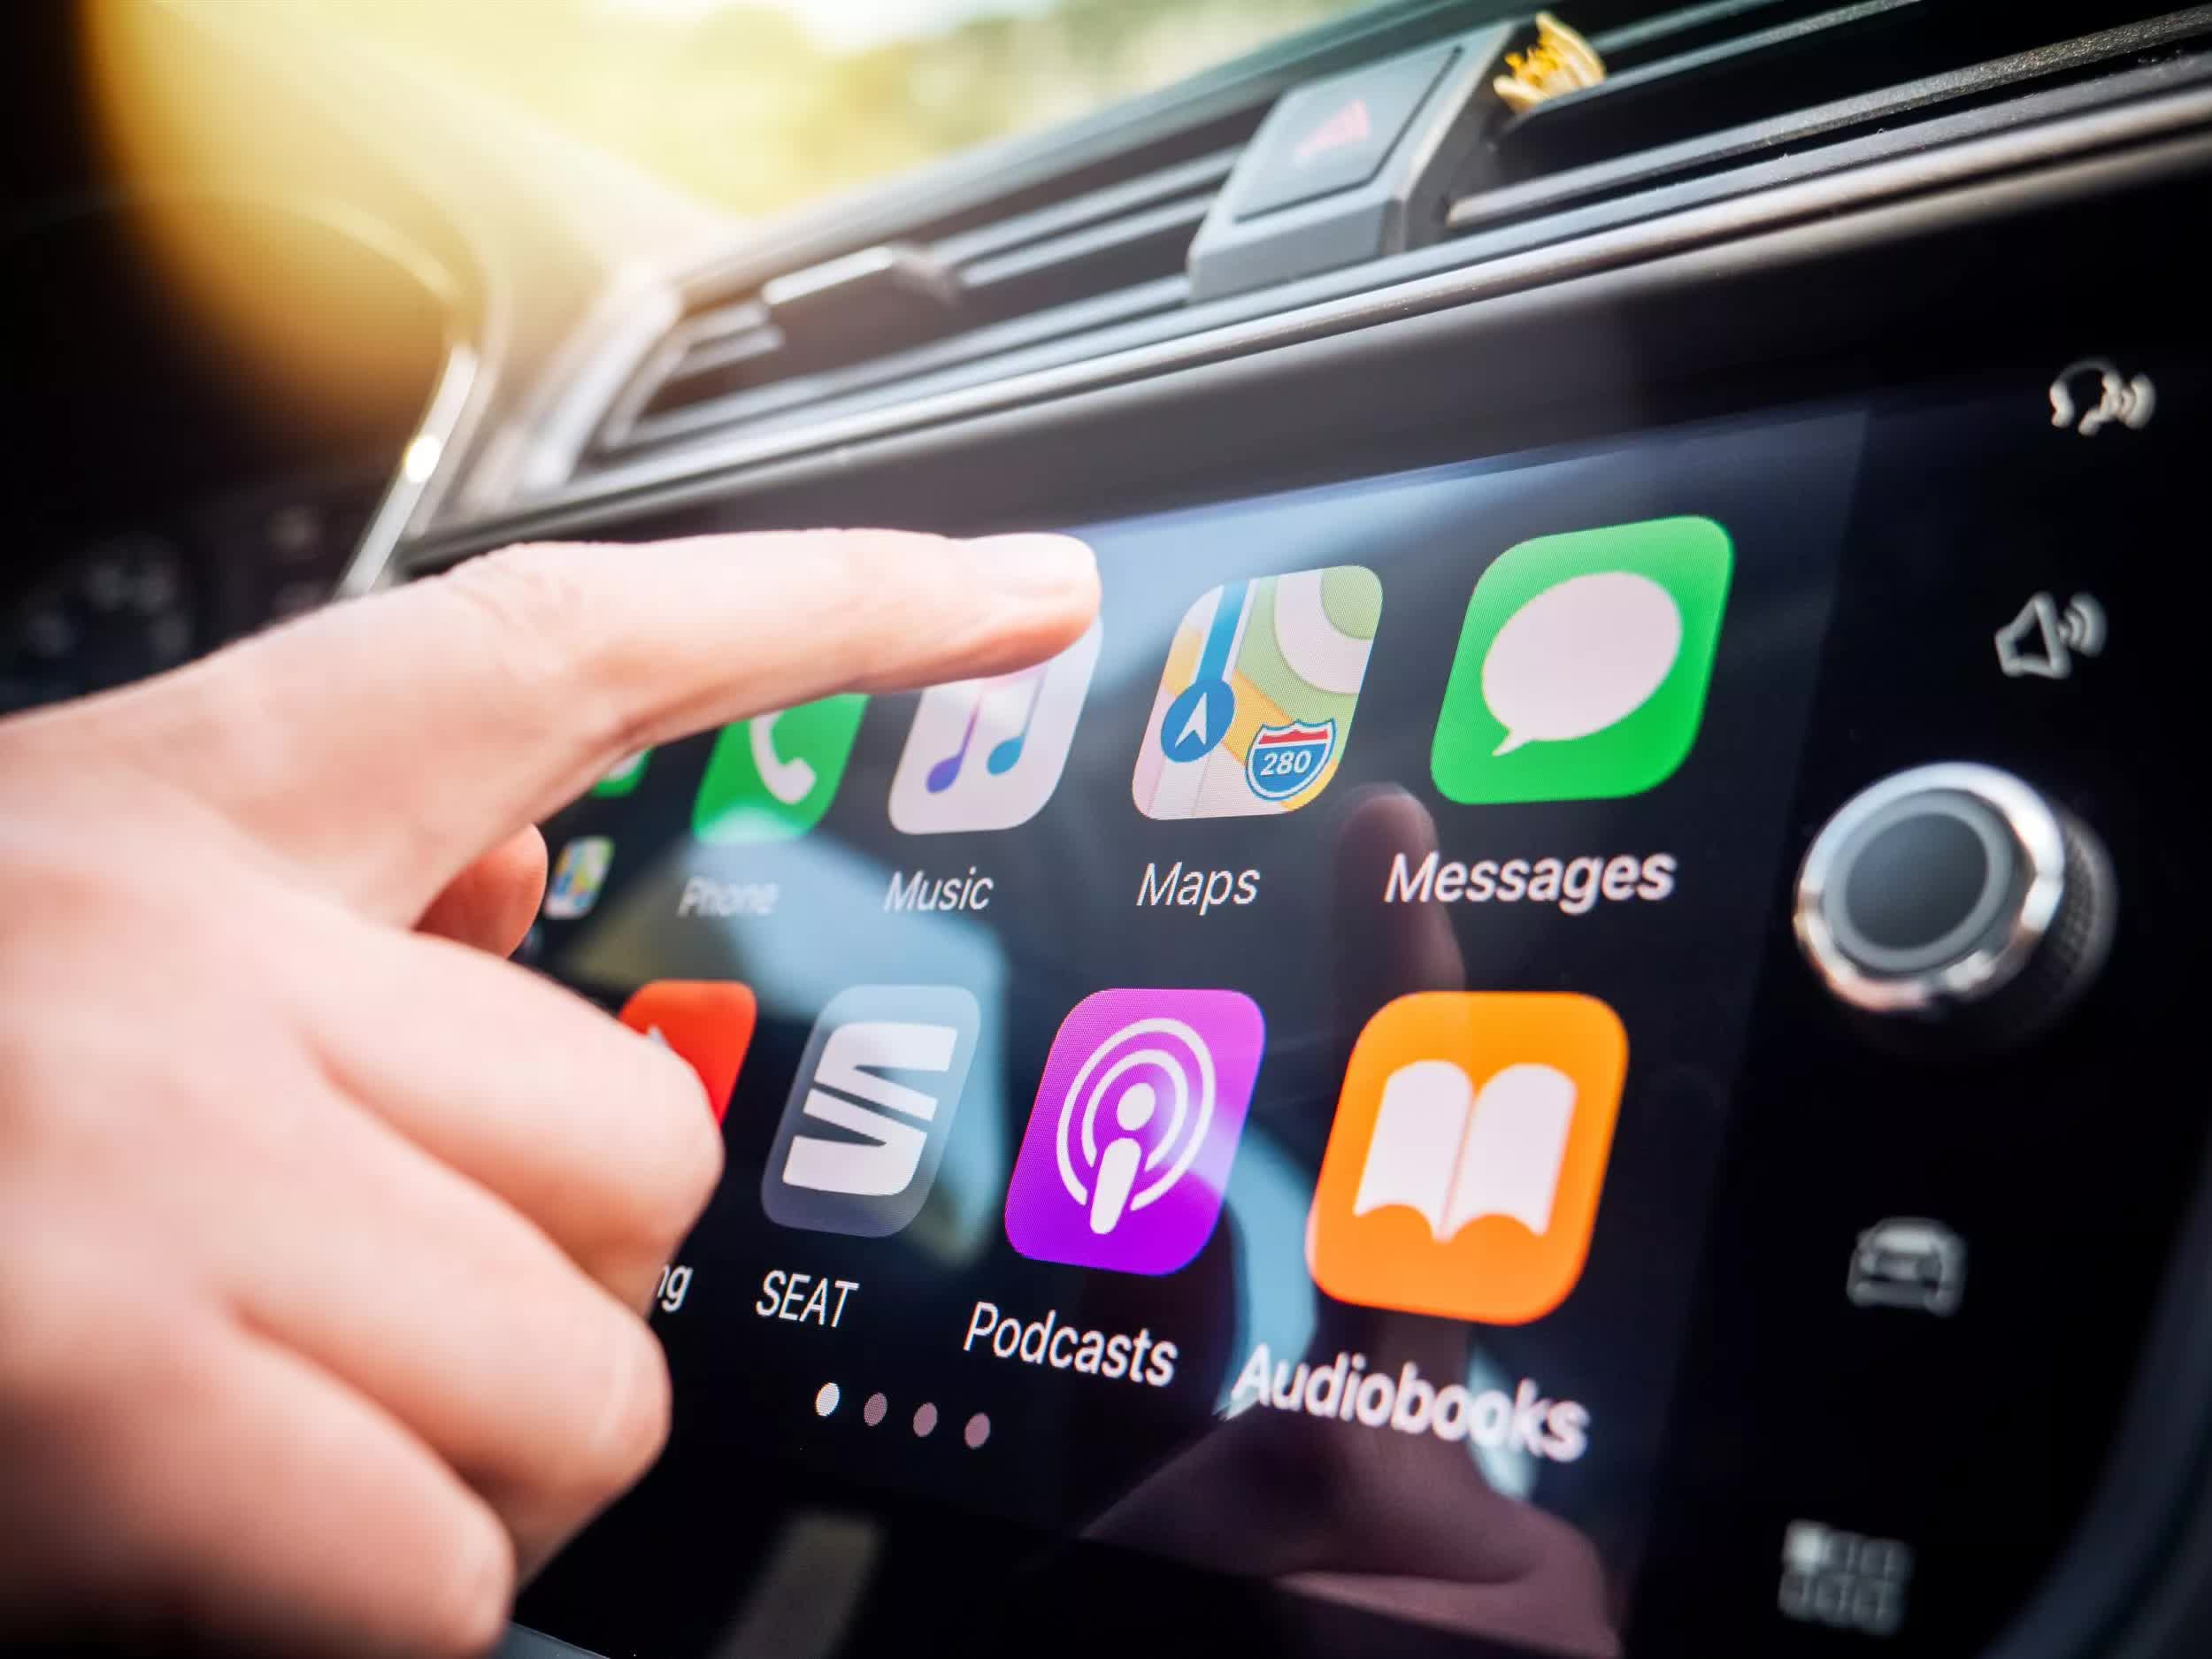 Apple reportedly set to partner with LG and Magna on Apple Car